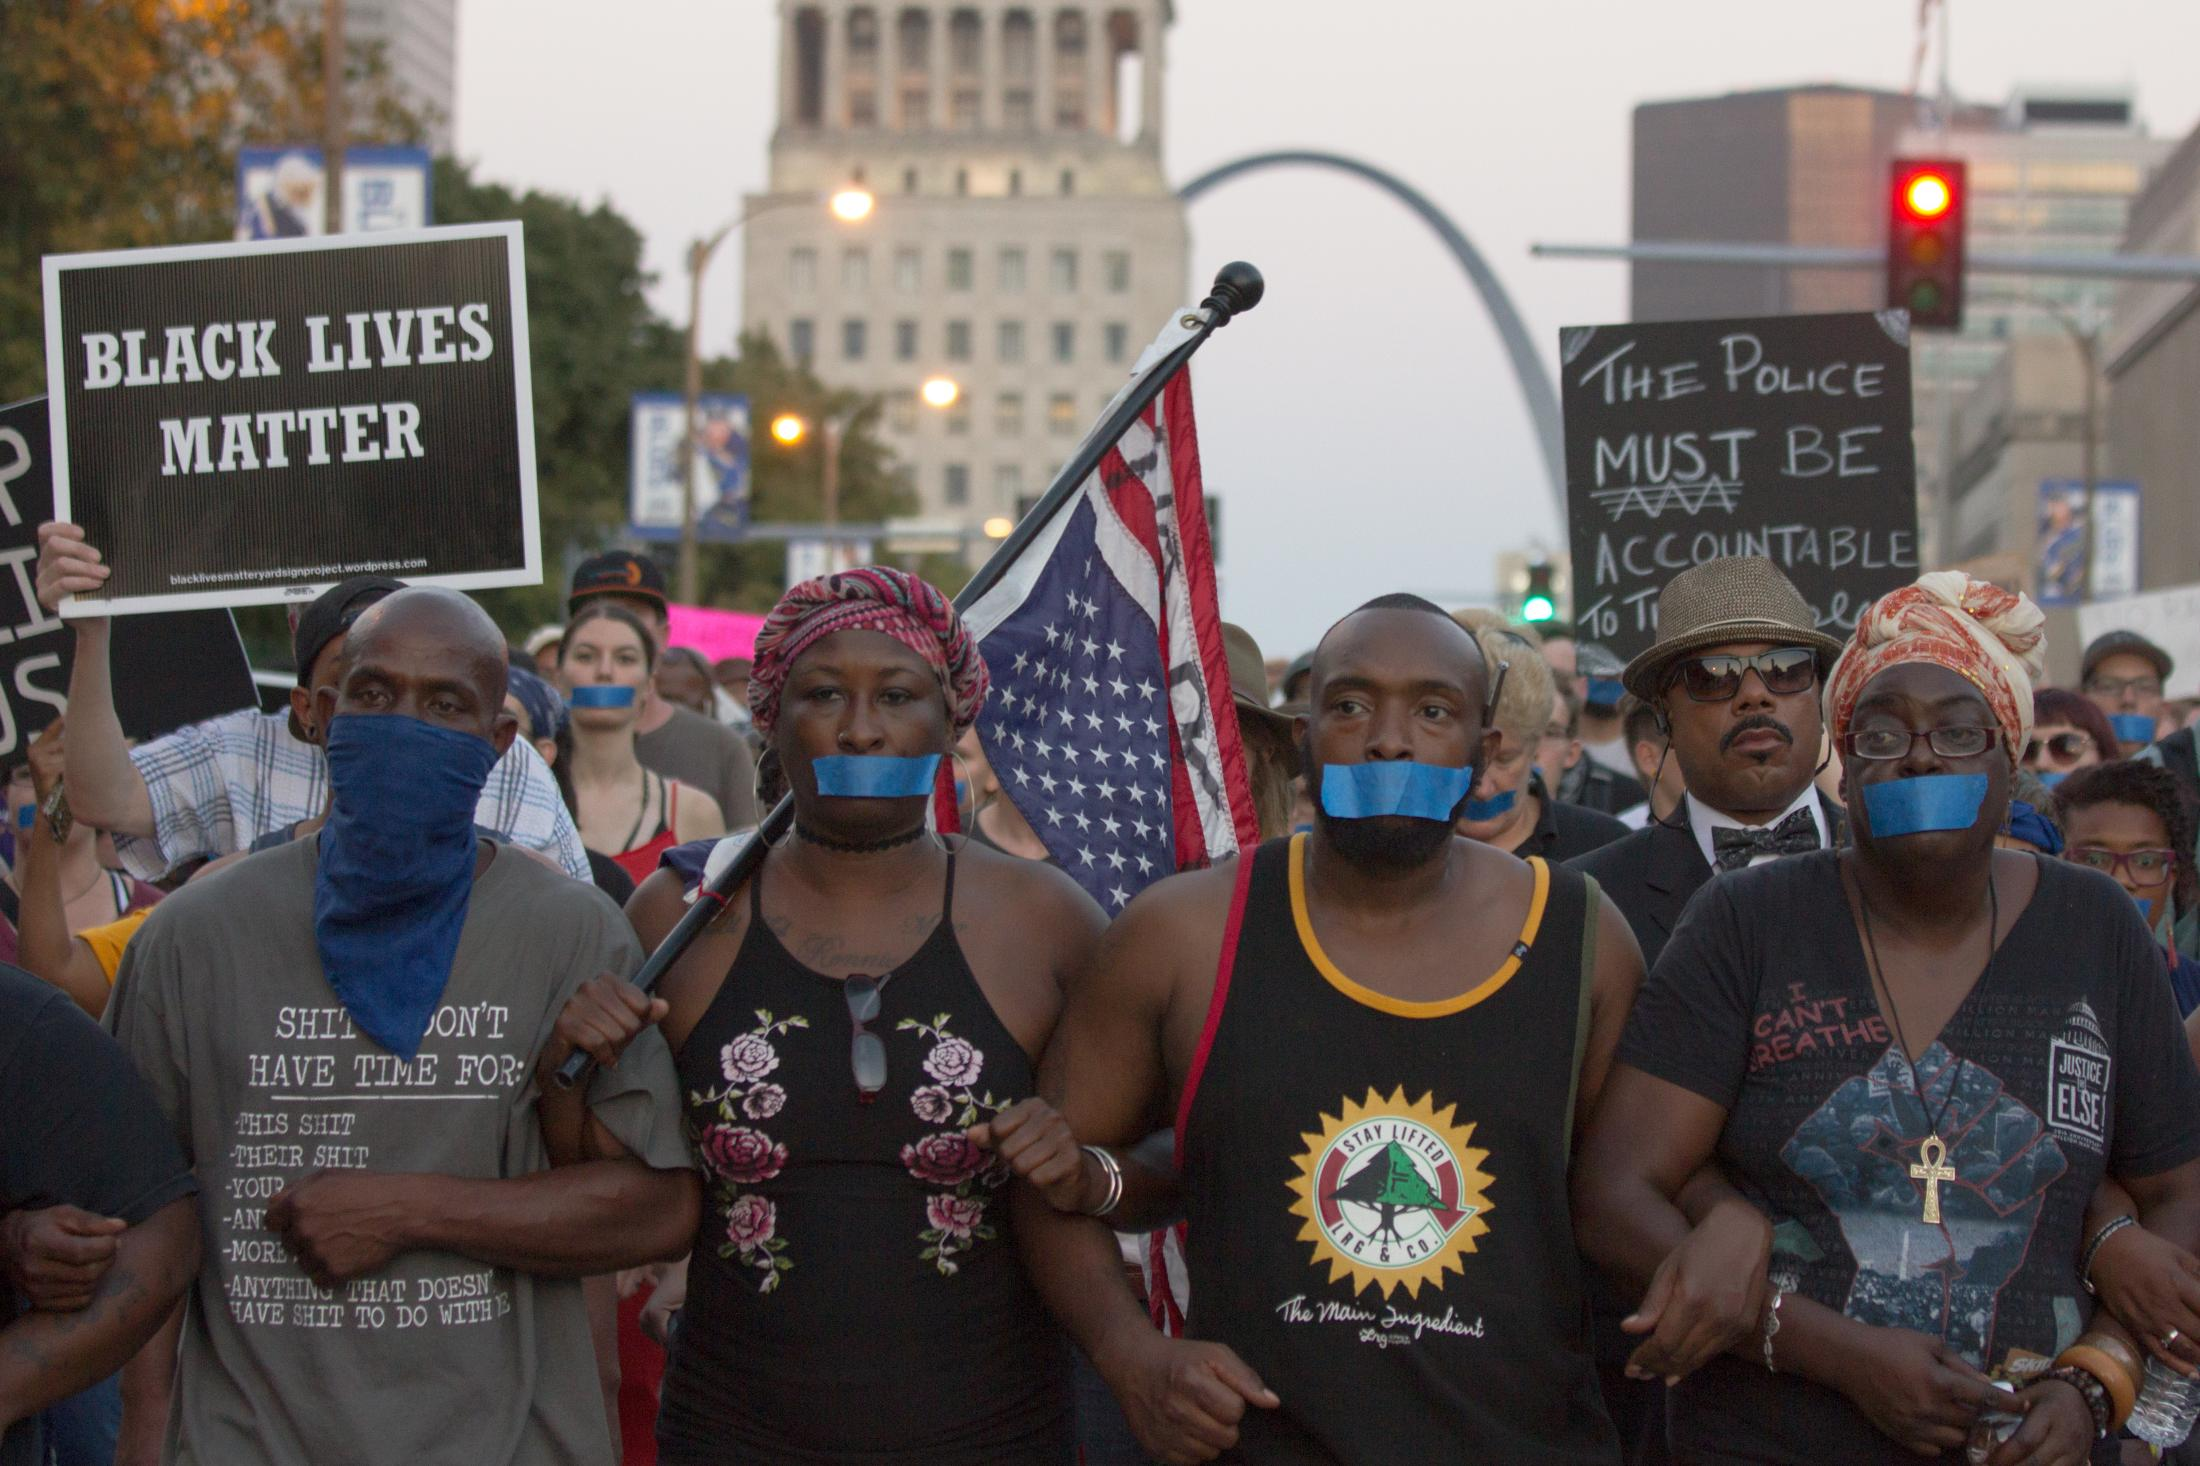 Protesters march down Market Street toward the St. Louis City Police Headquarters with blue tape over their mouths during a blue silence is violence demonstration on September 25, 2017 in St. Louis, MO.